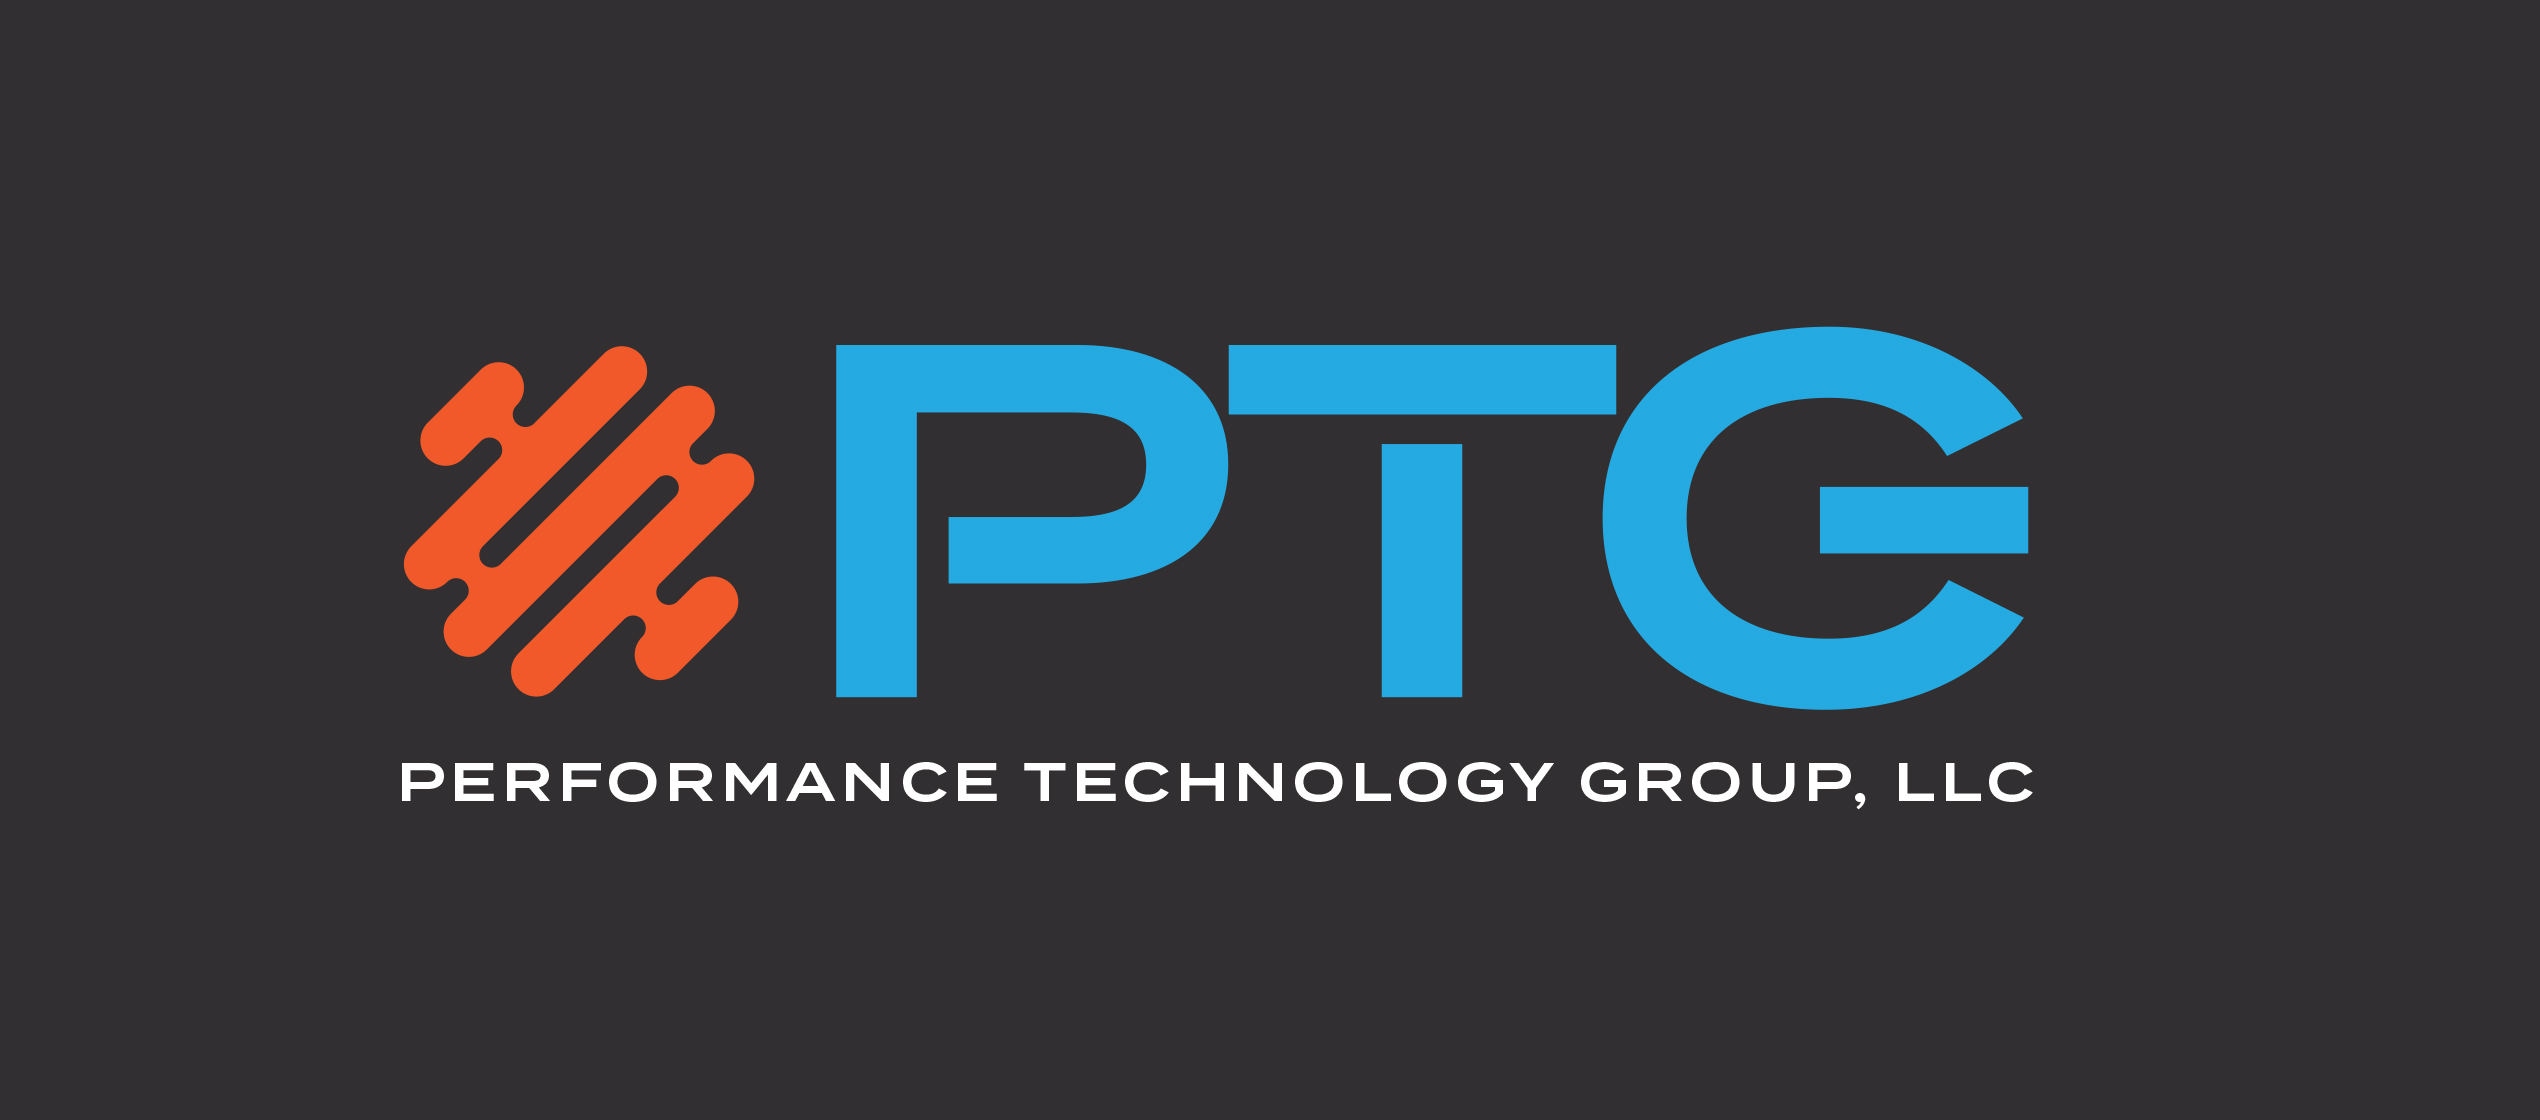 Performance Technology: Building God's Way Announces New Partnership With